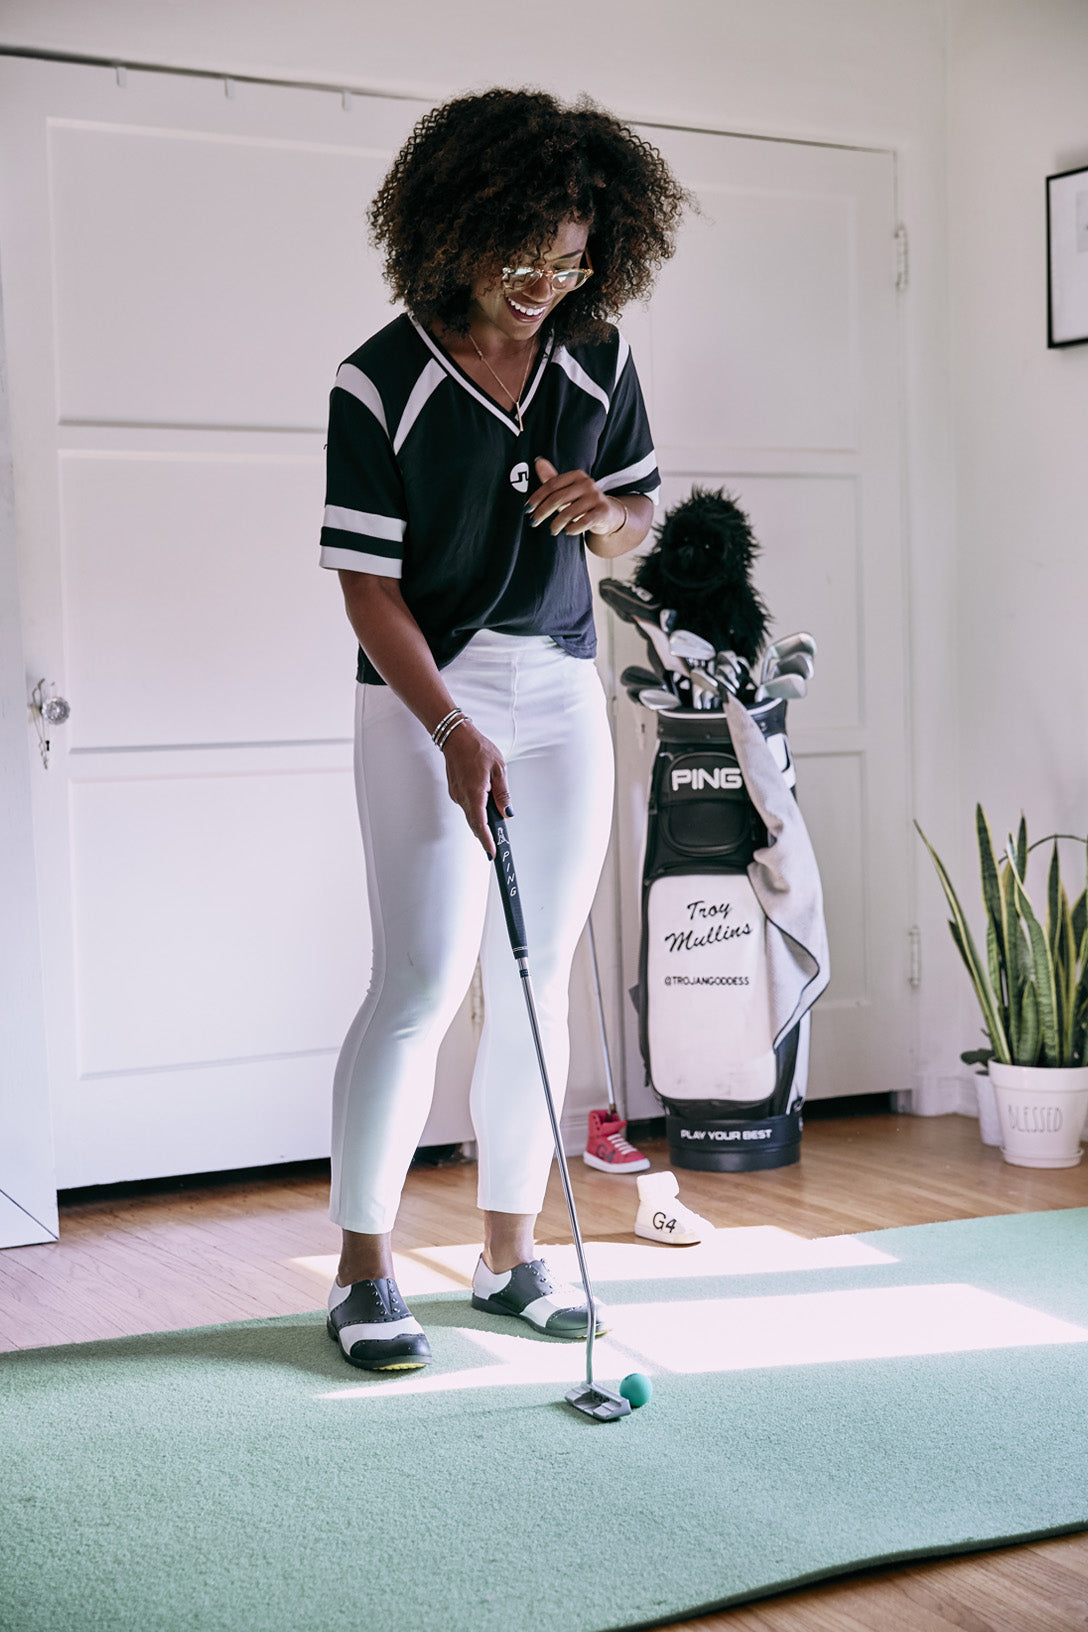 Troy Mullins at home holding a golf club